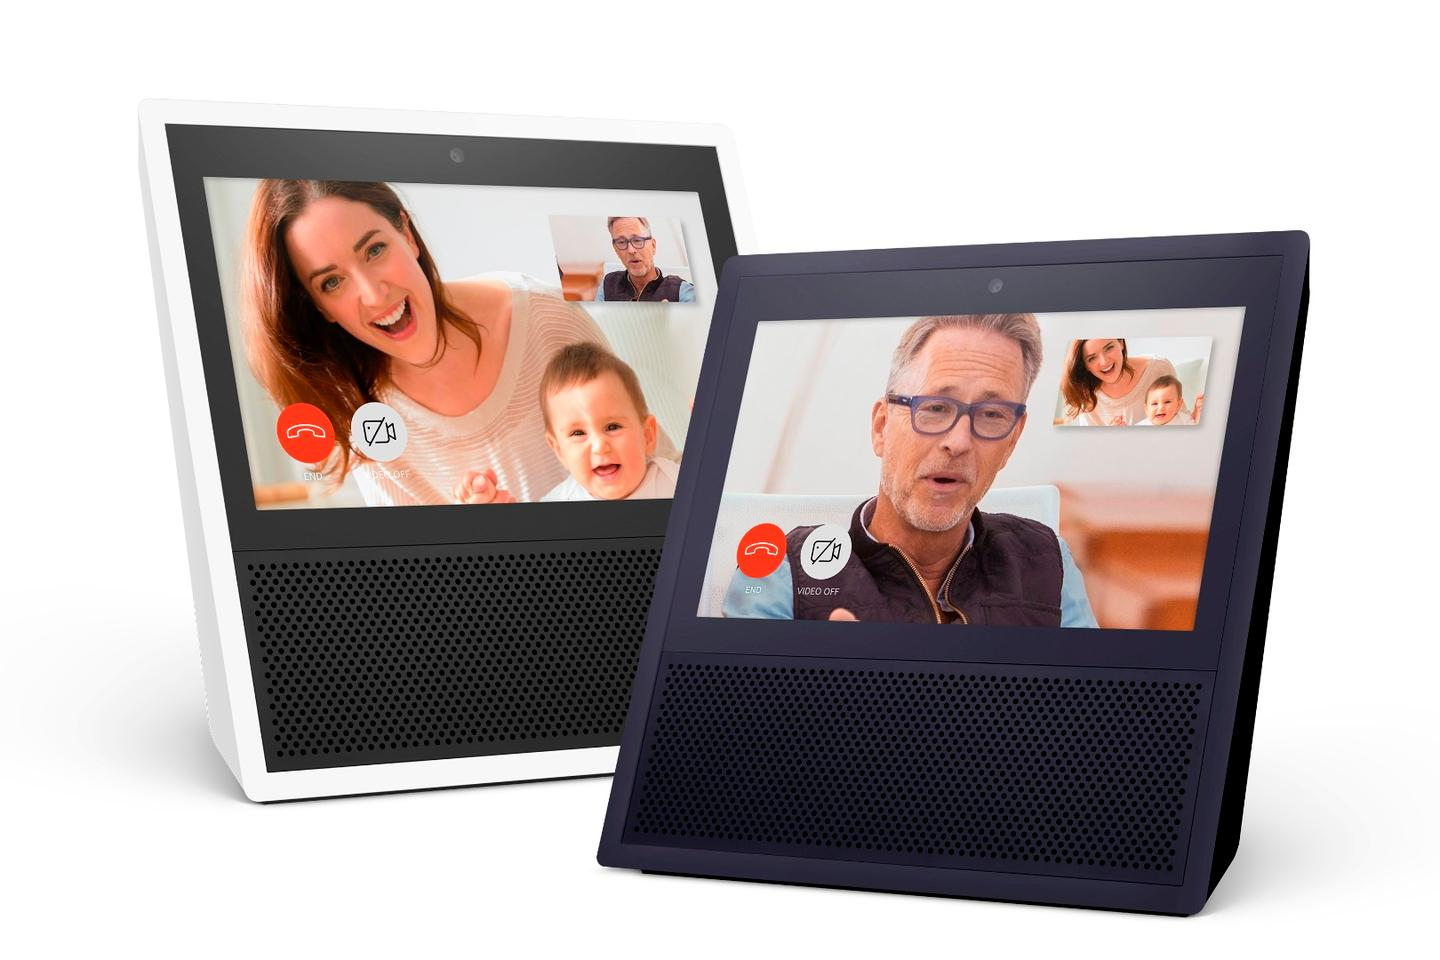 Amazon Echo Show can play video clips and make calls